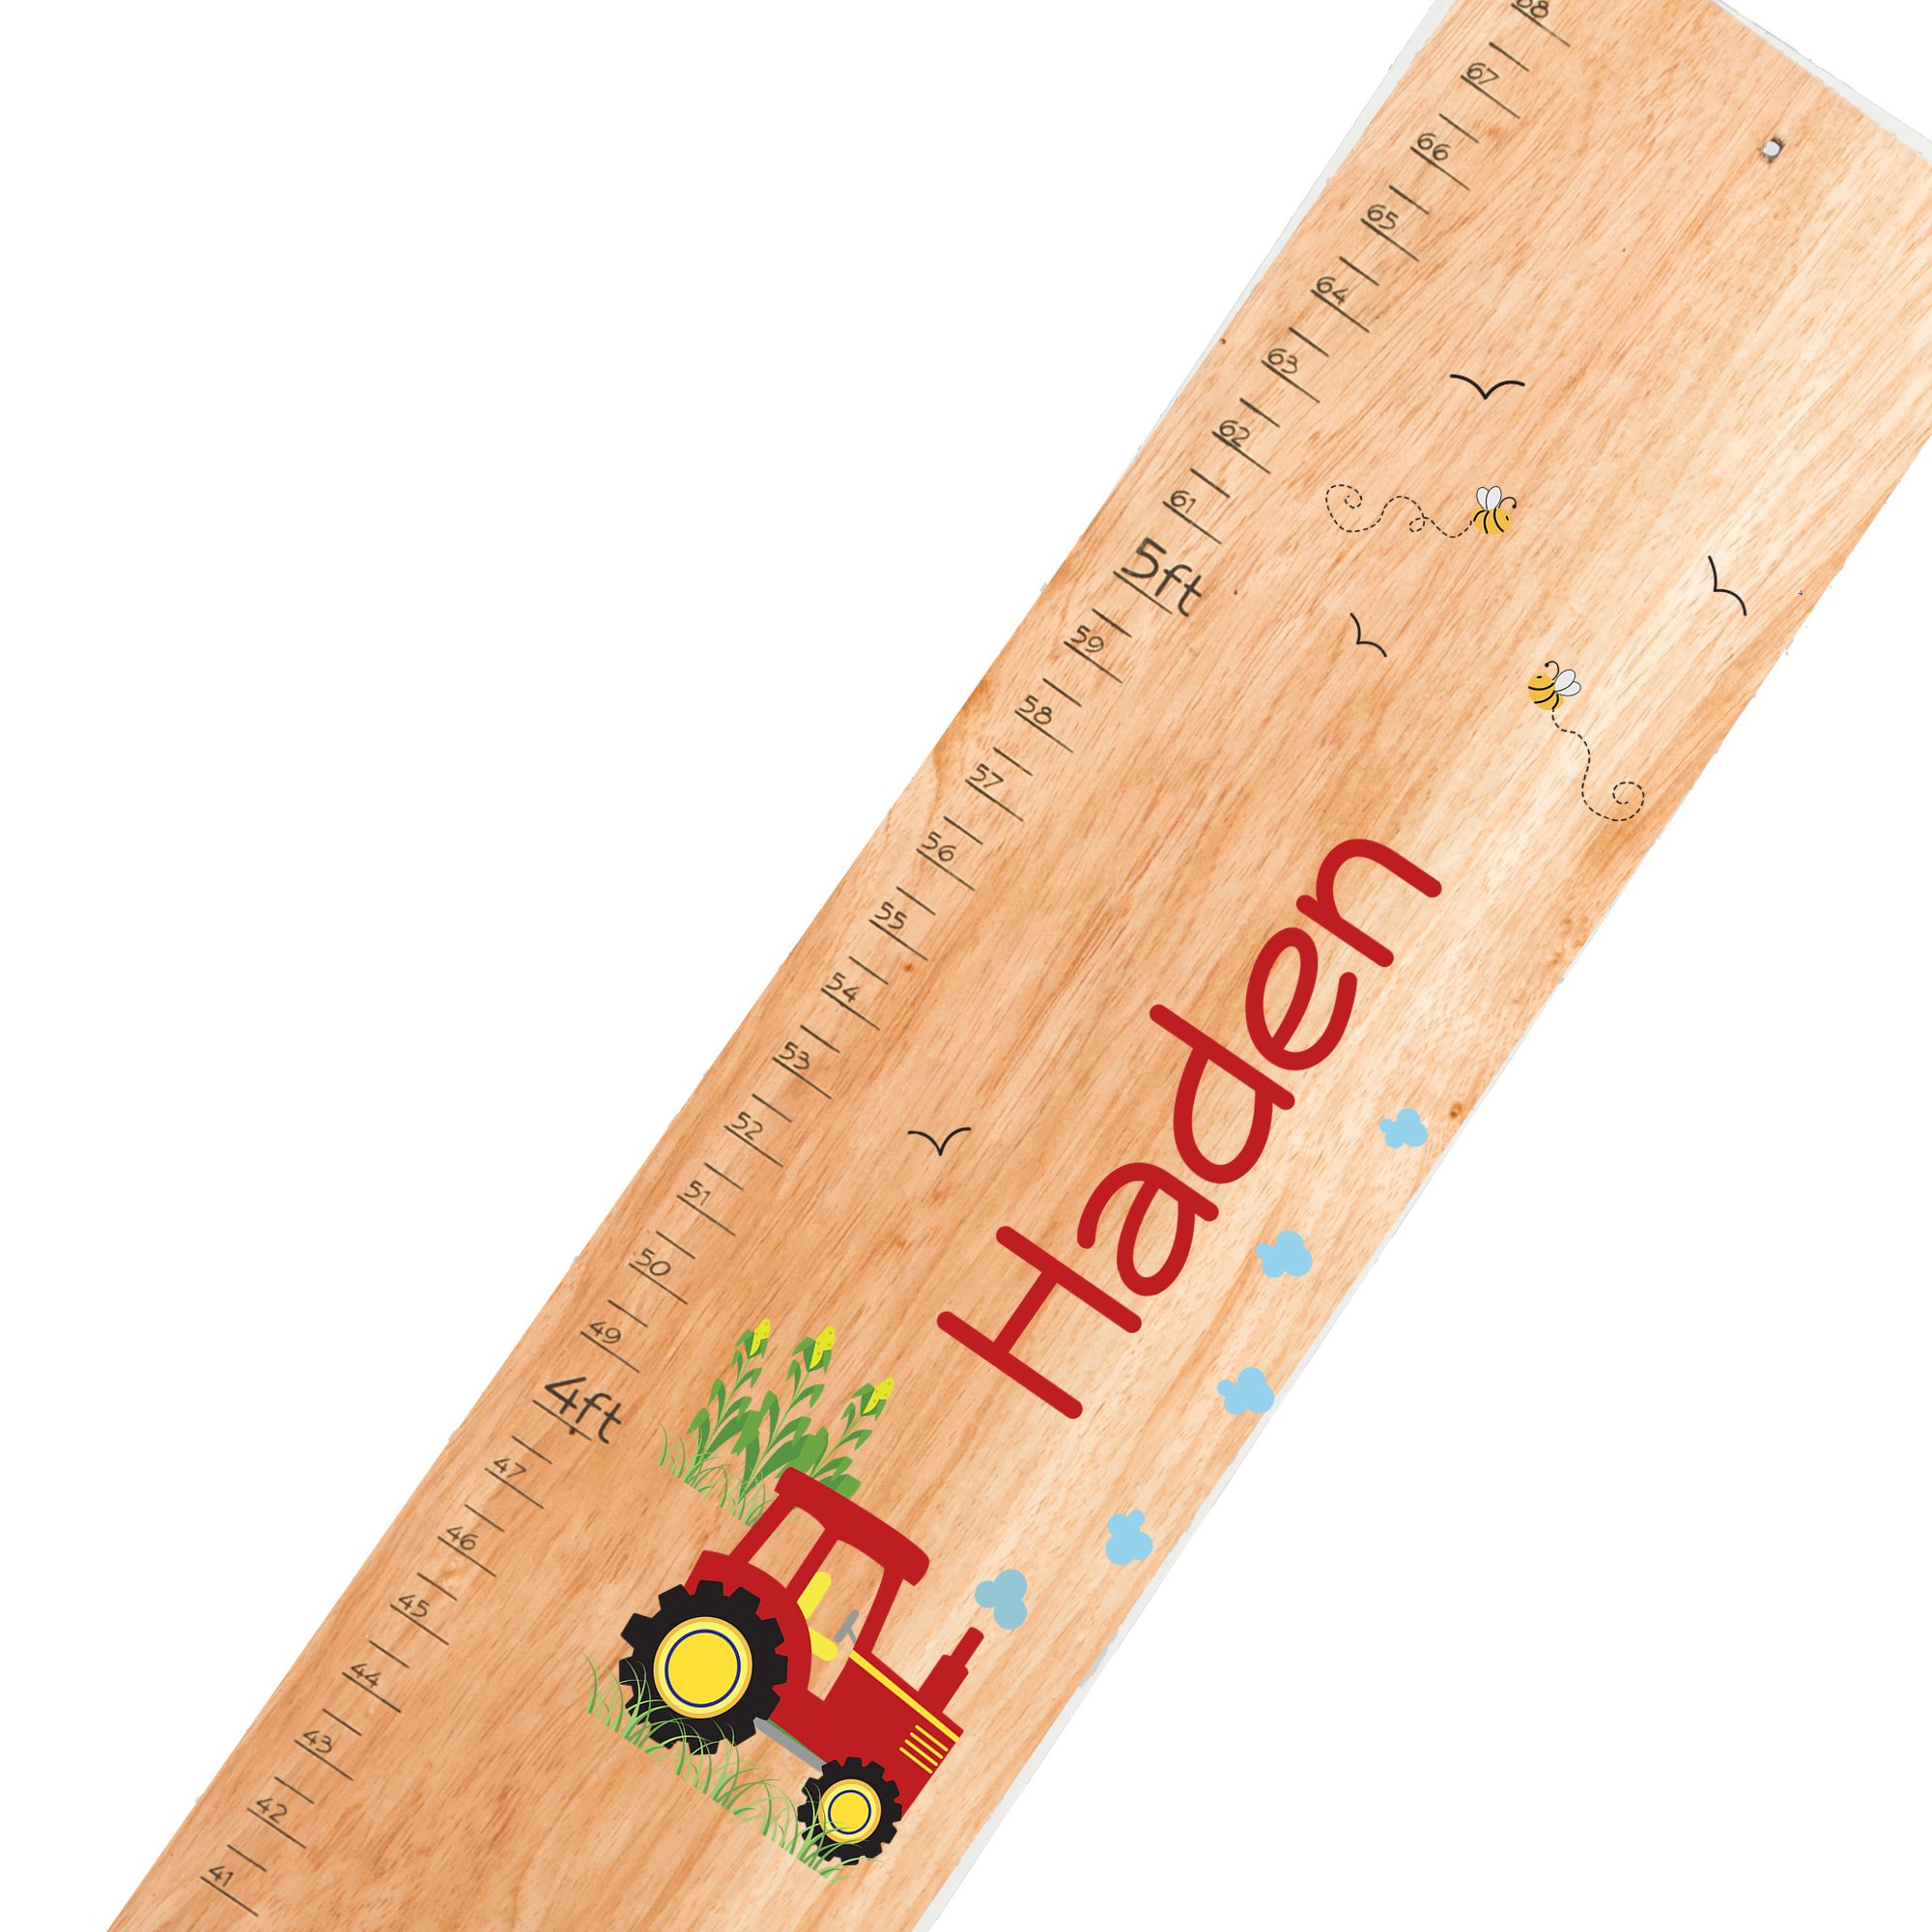 Personalized natural Red Tractor childrens wooden growth chart